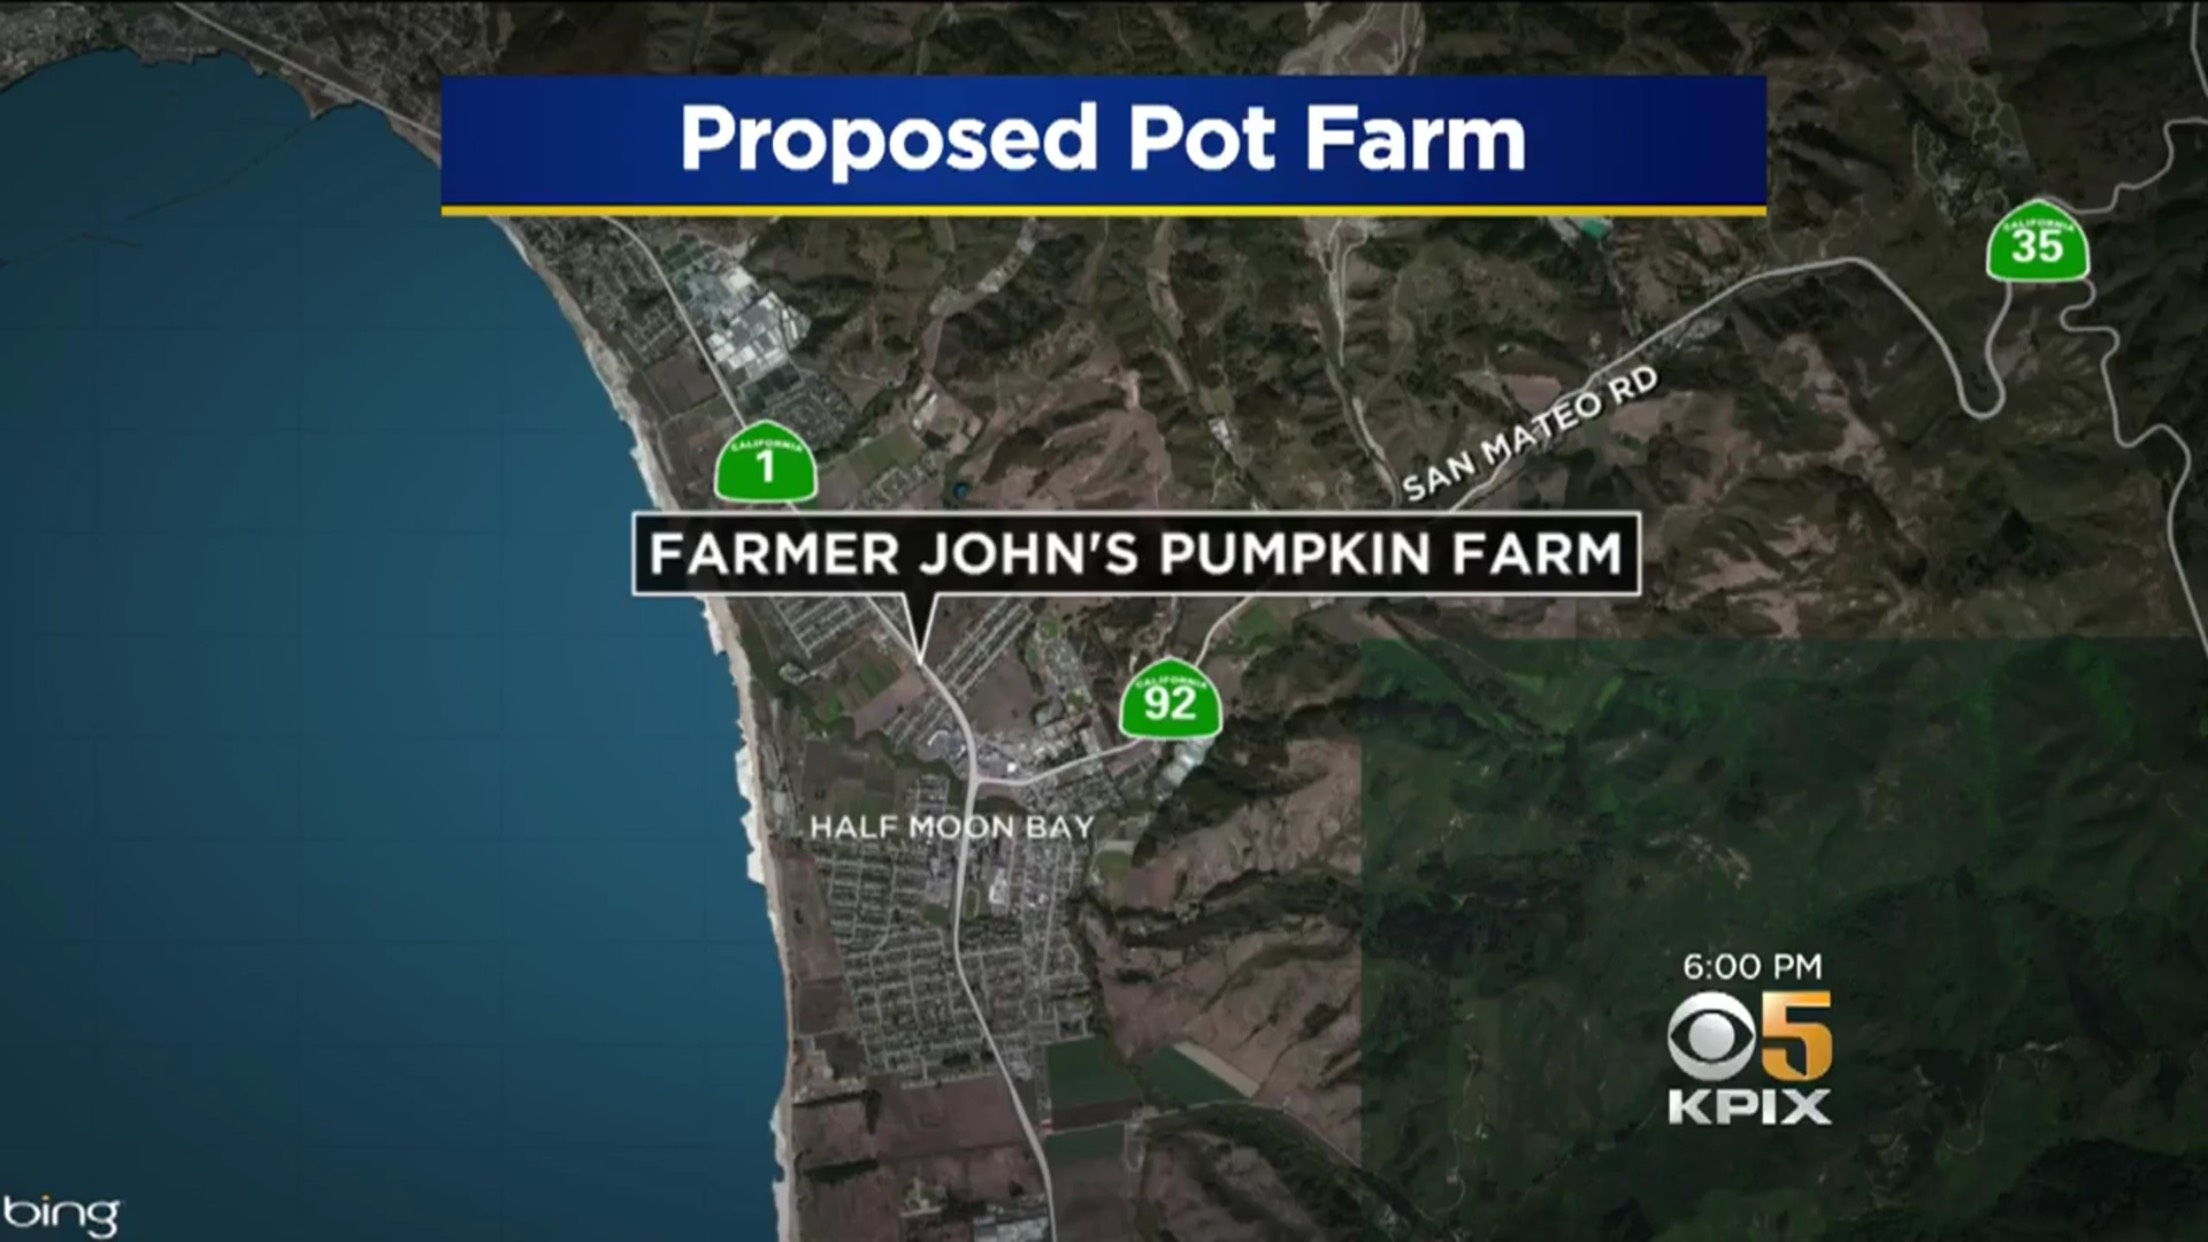 Proposed Pot Farm: Farmer John's Pumpkin Farm